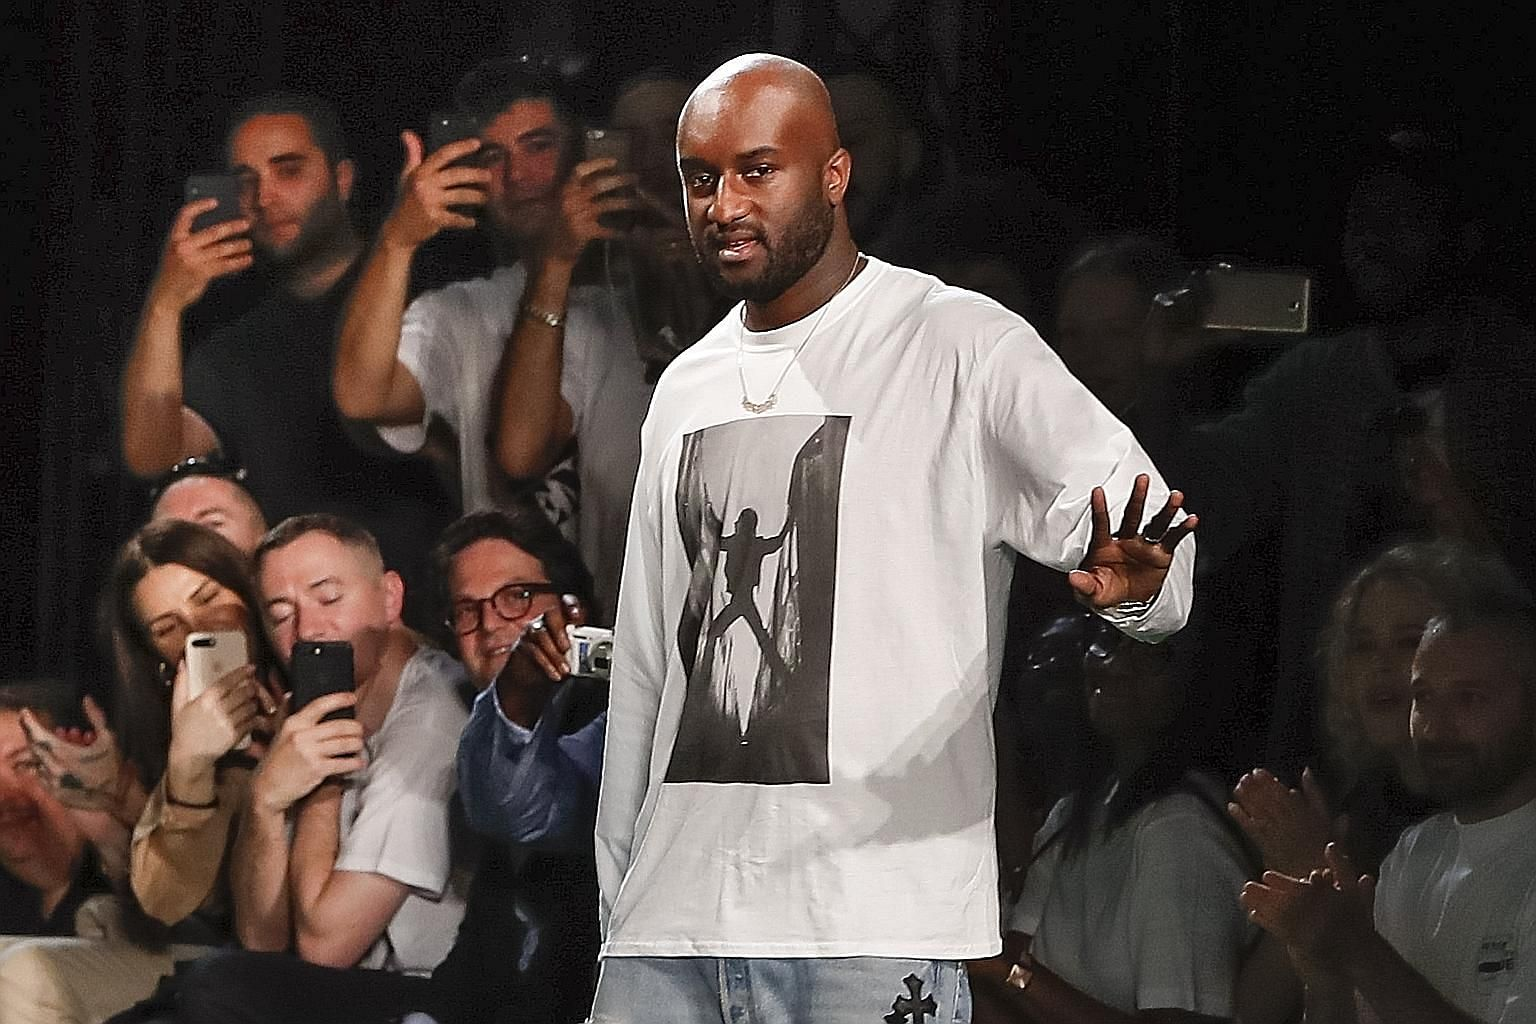 Fashion designer Virgil Abloh on the runway after showing his Off-White Spring/Summer 2019 men's collection during Paris Men's Fashion Week last week.